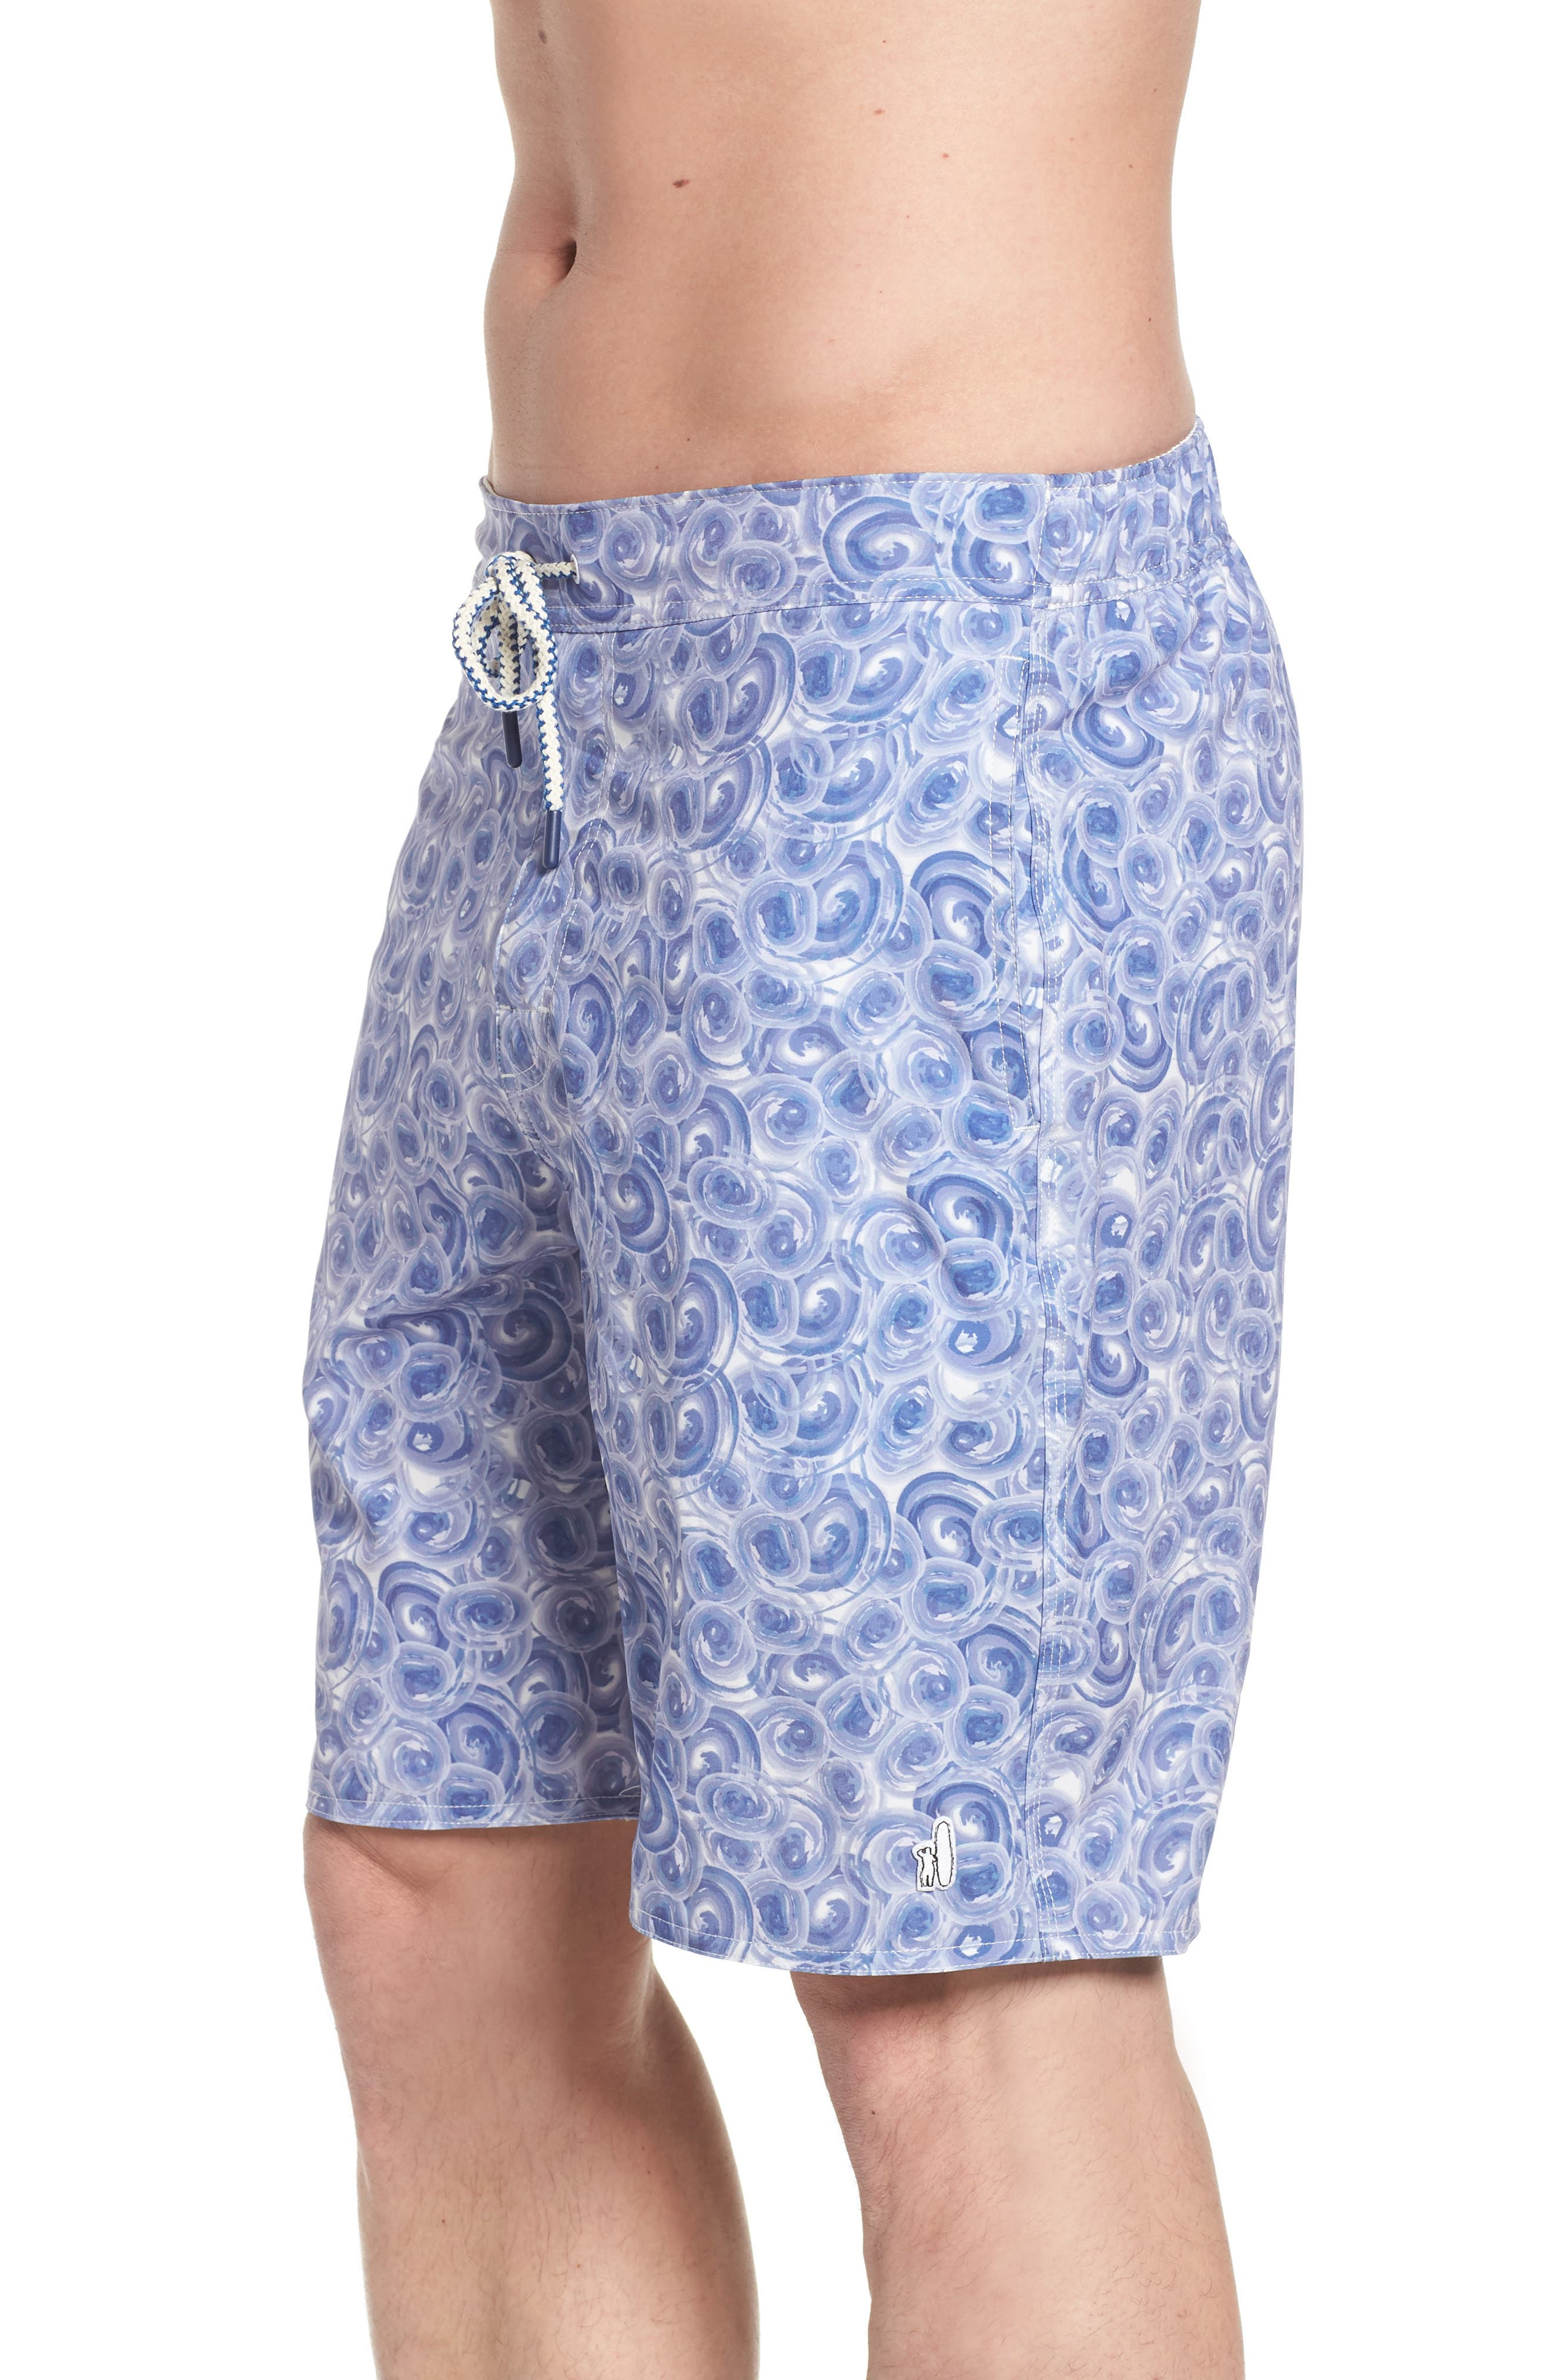 High Tide Regular Fit Board Shorts,                             Alternate thumbnail 3, color,                             Gulf Blue